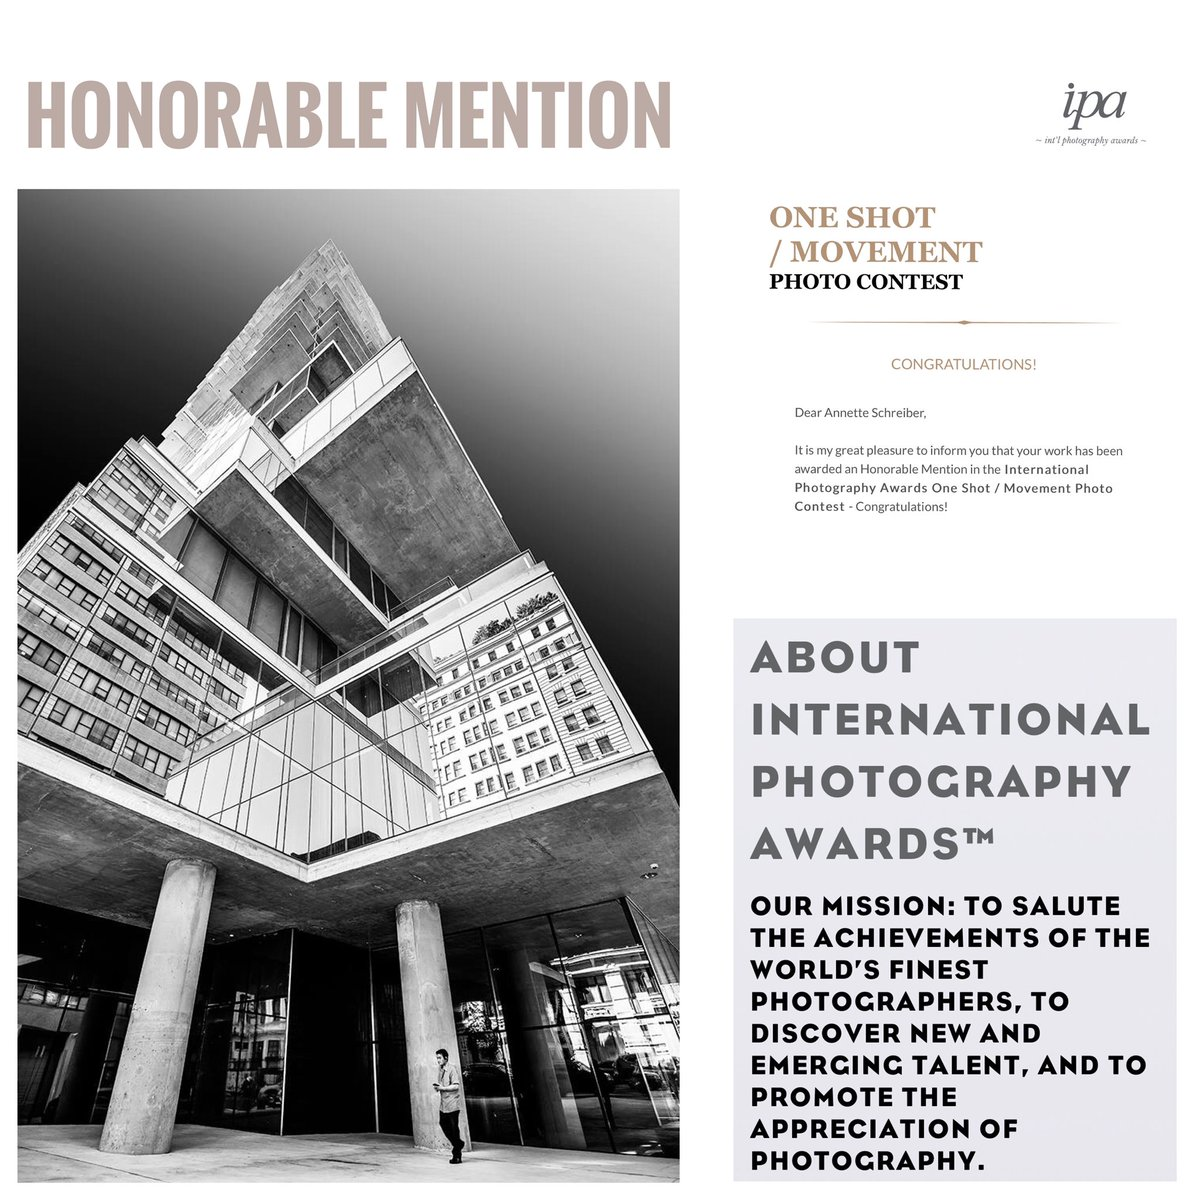 Feeling extremely honored that I got awarded an HONORABLE MENTION for the ONE SHOT MOVEMENT from IPA (International Photography Awards)! Yay!!!☺️ #honorablemention #ipa #photography